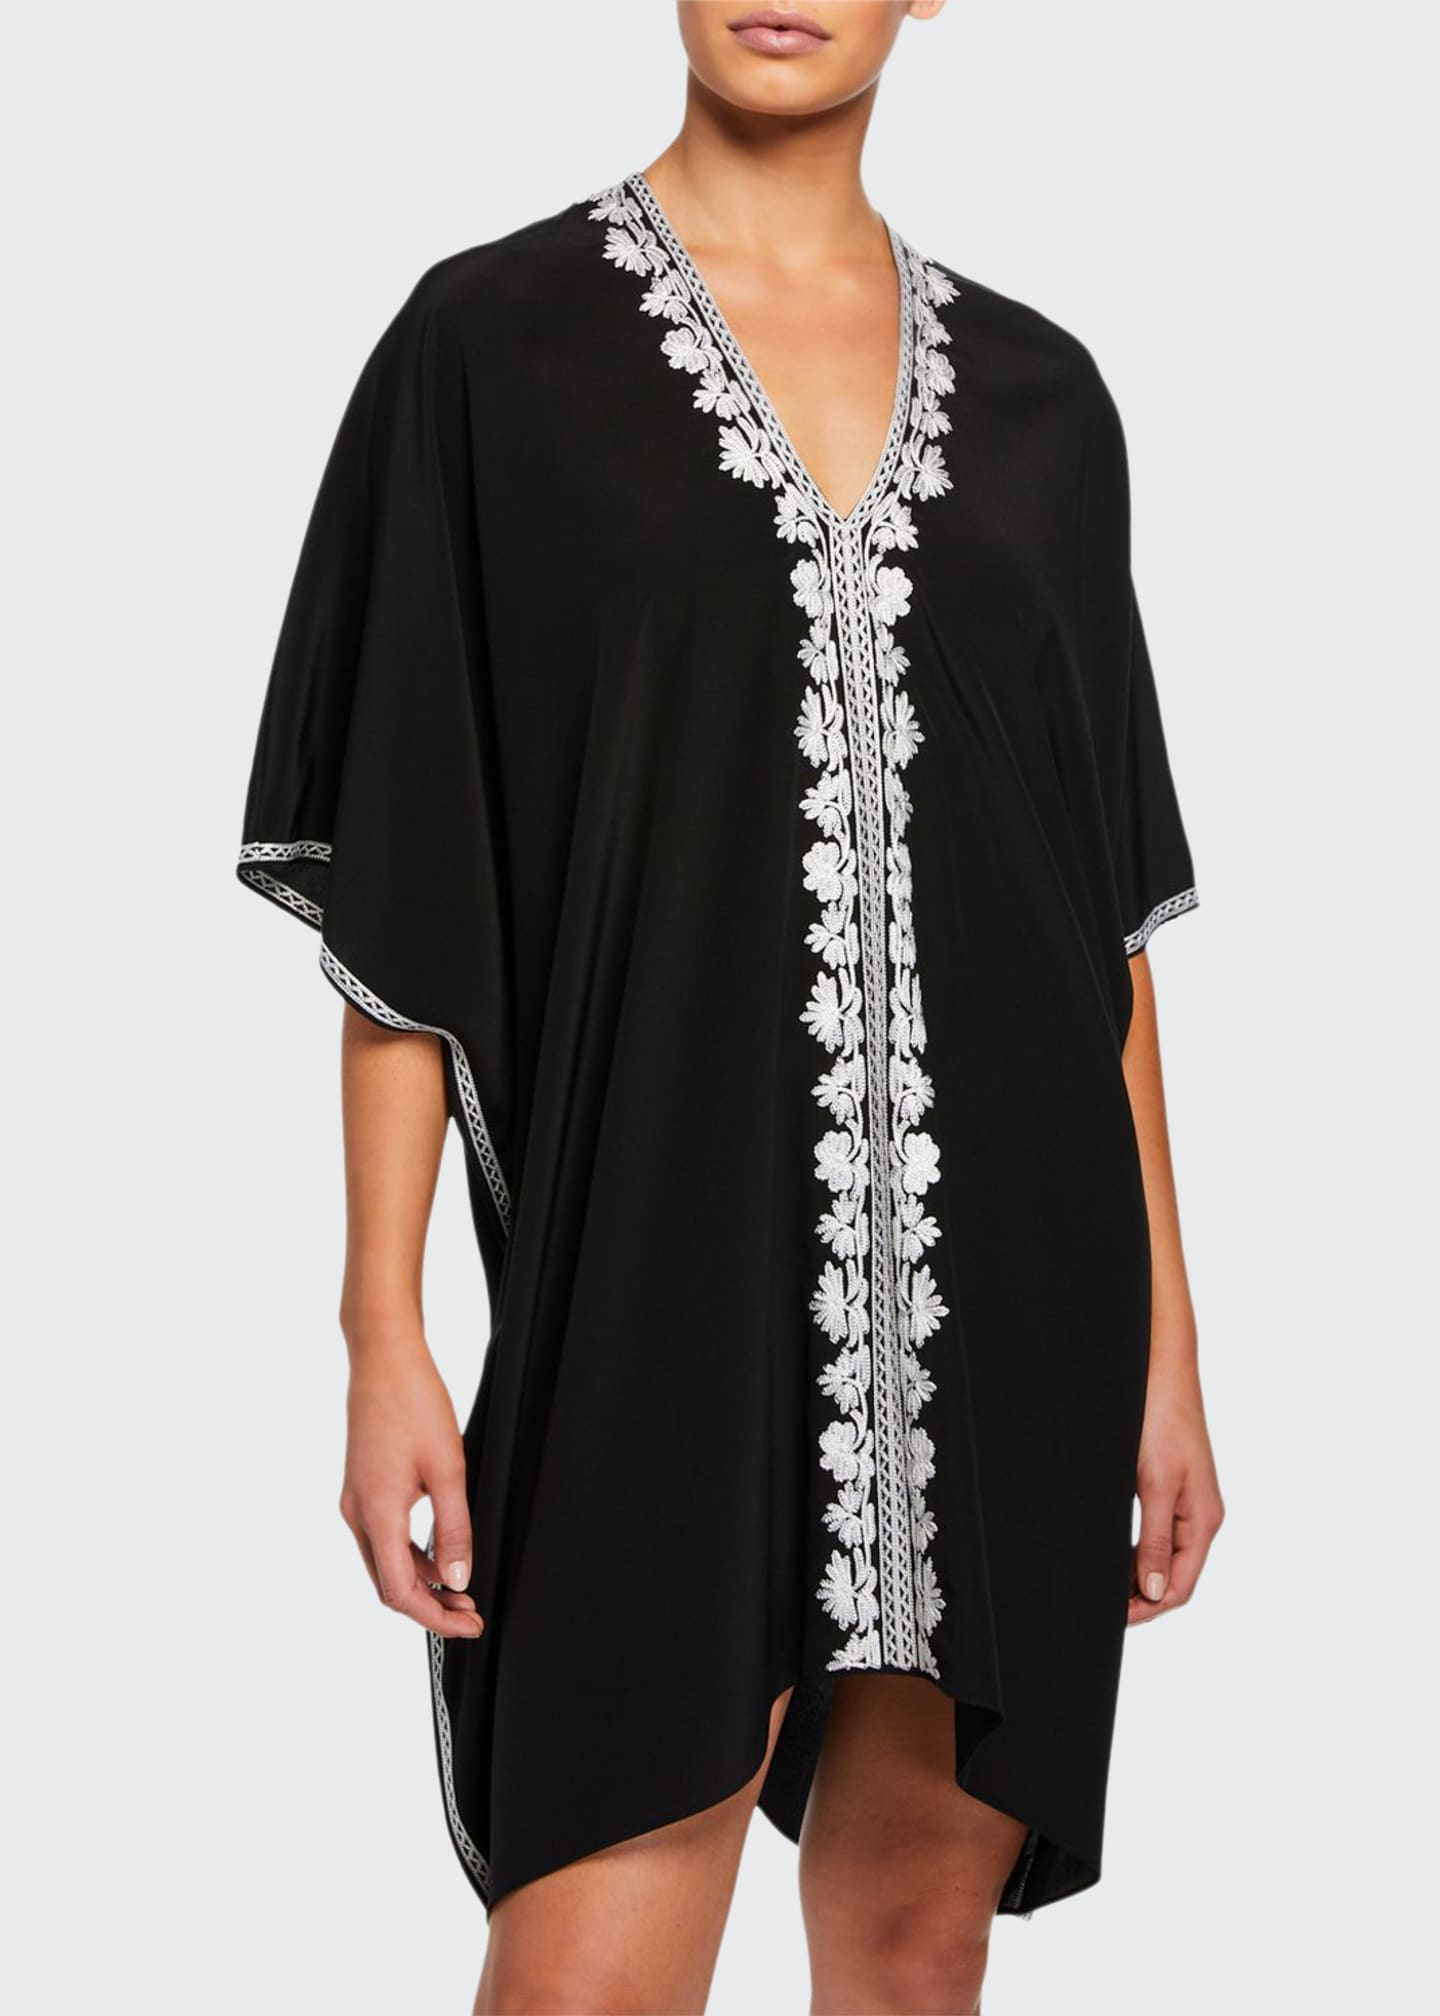 Marie France Van Damme Short Embroidered Boubou-Coverup Dress